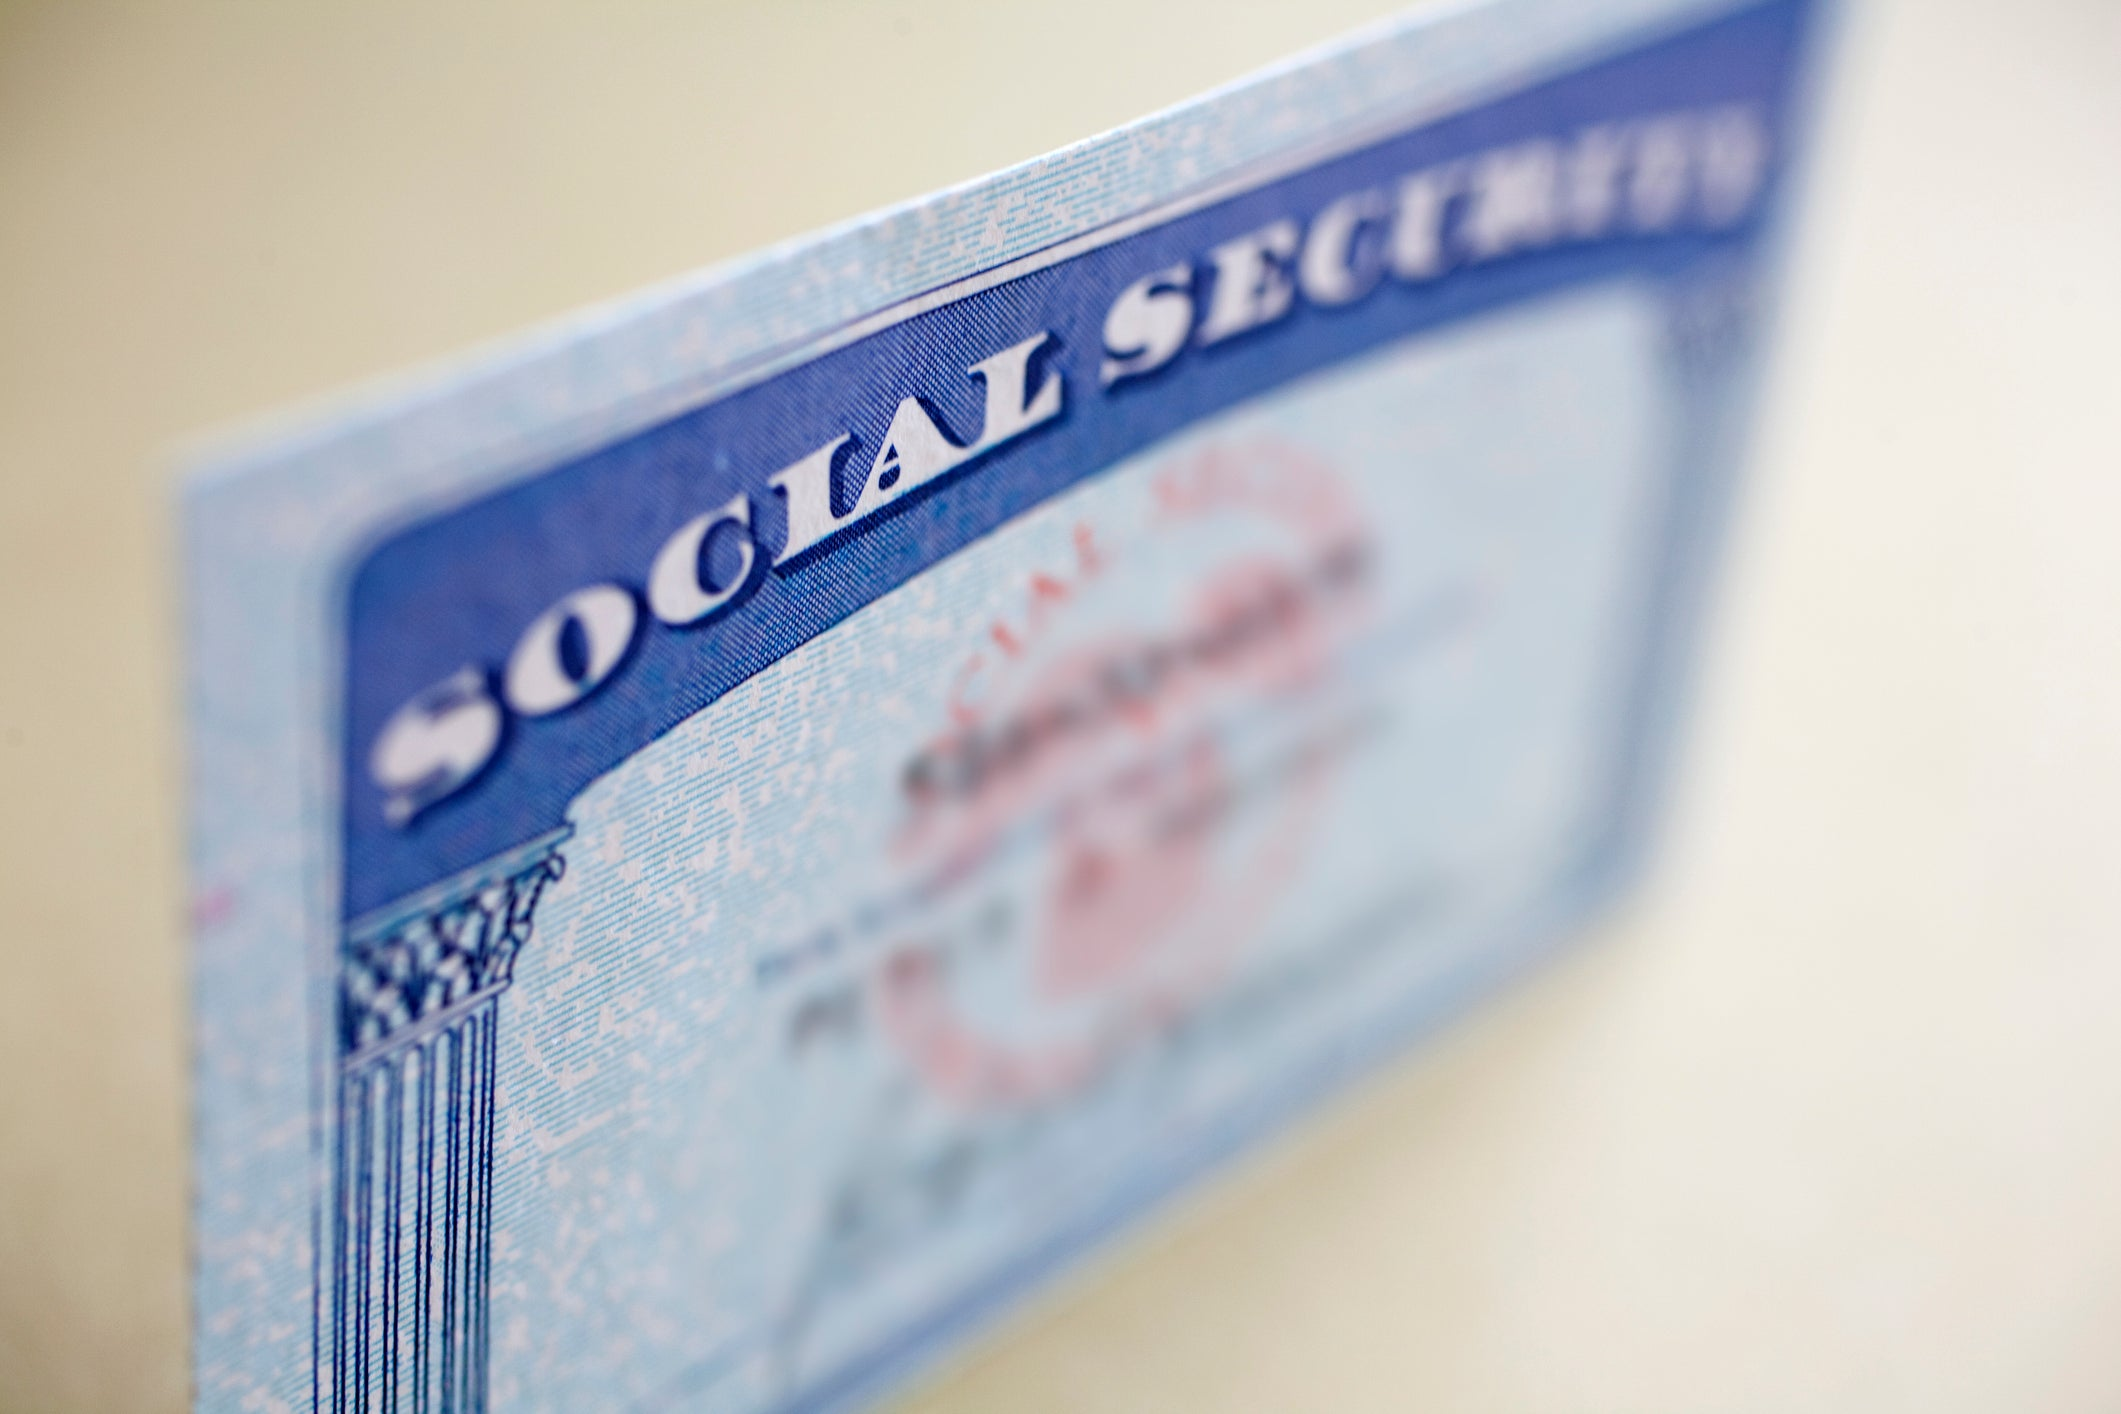 Social Security Cuts Are a Major Issue in the 2020 Election, Data Reveals